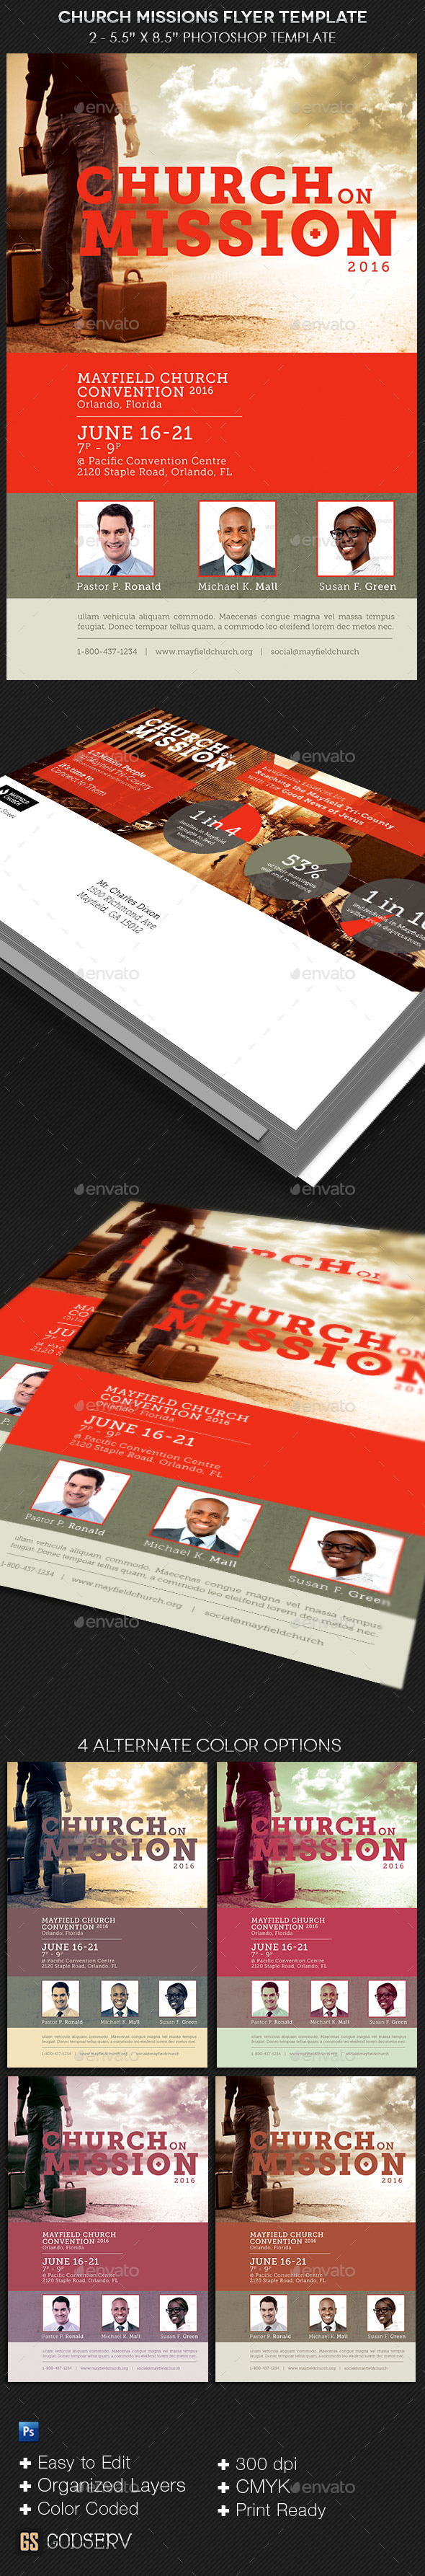 Church Missions Flyer Template - Church Flyers